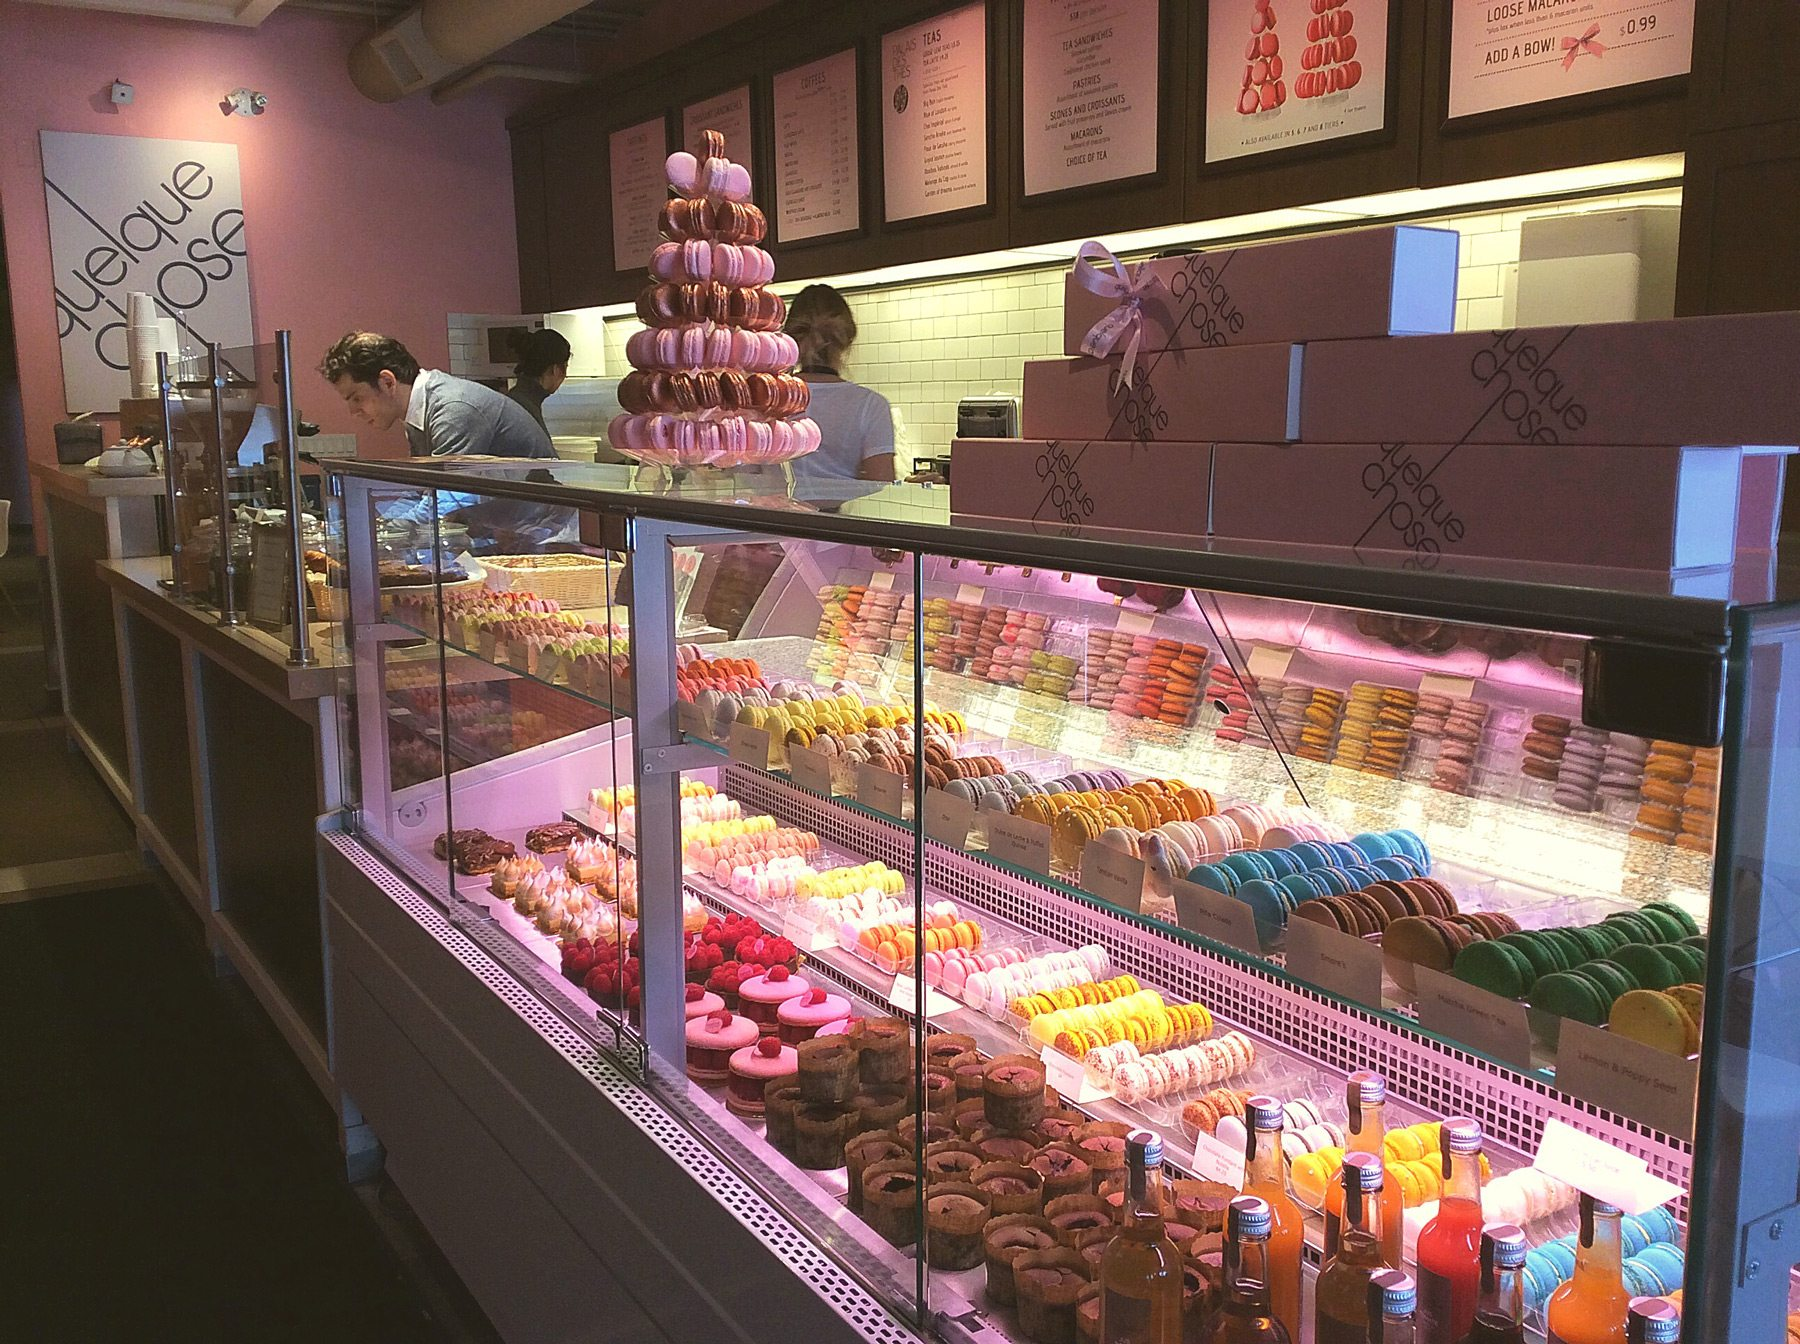 A display case showcases two dozen flavours of macarons and assorted pastries. The shop also sells coffees, teas, and other drinks